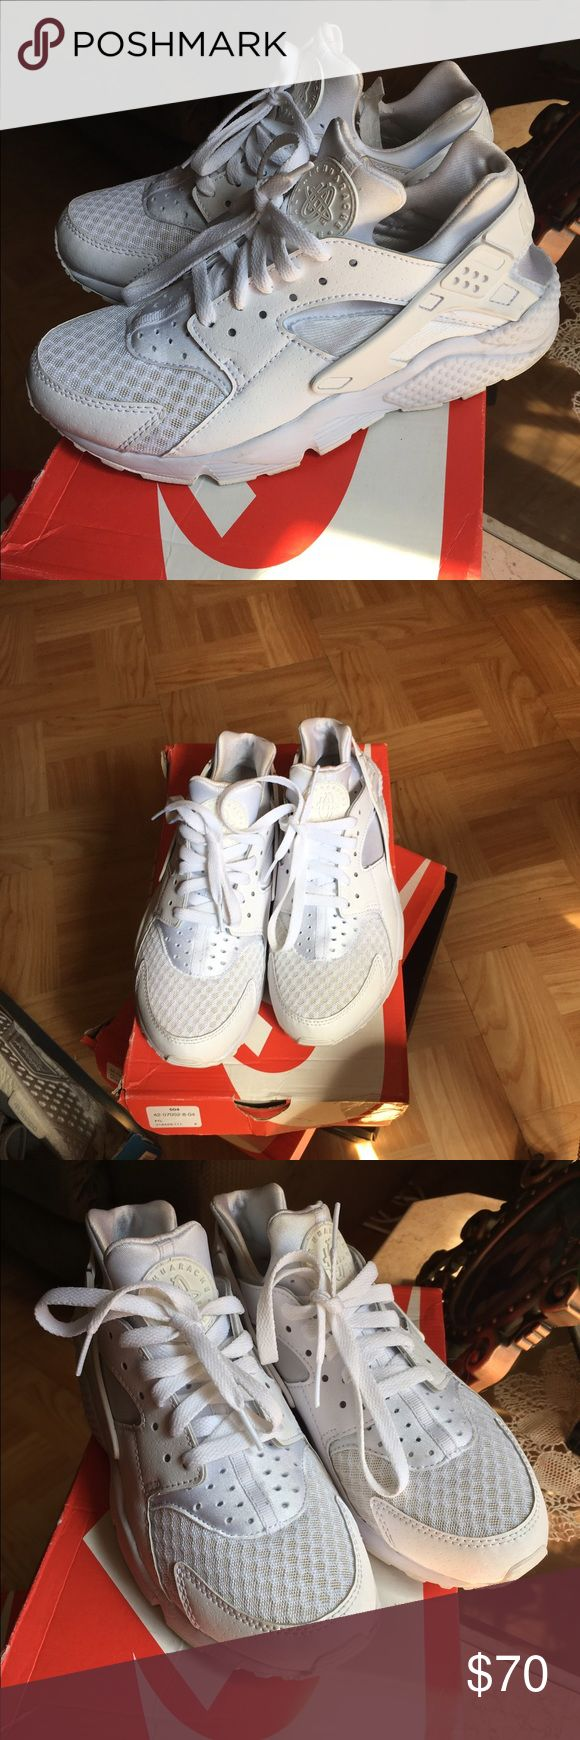 All White Nike huaraches sneakers Only been worn once , size: 7Y is a 8.5 or 9 in women /no flaws , comes with the box Nike Shoes Sneakers